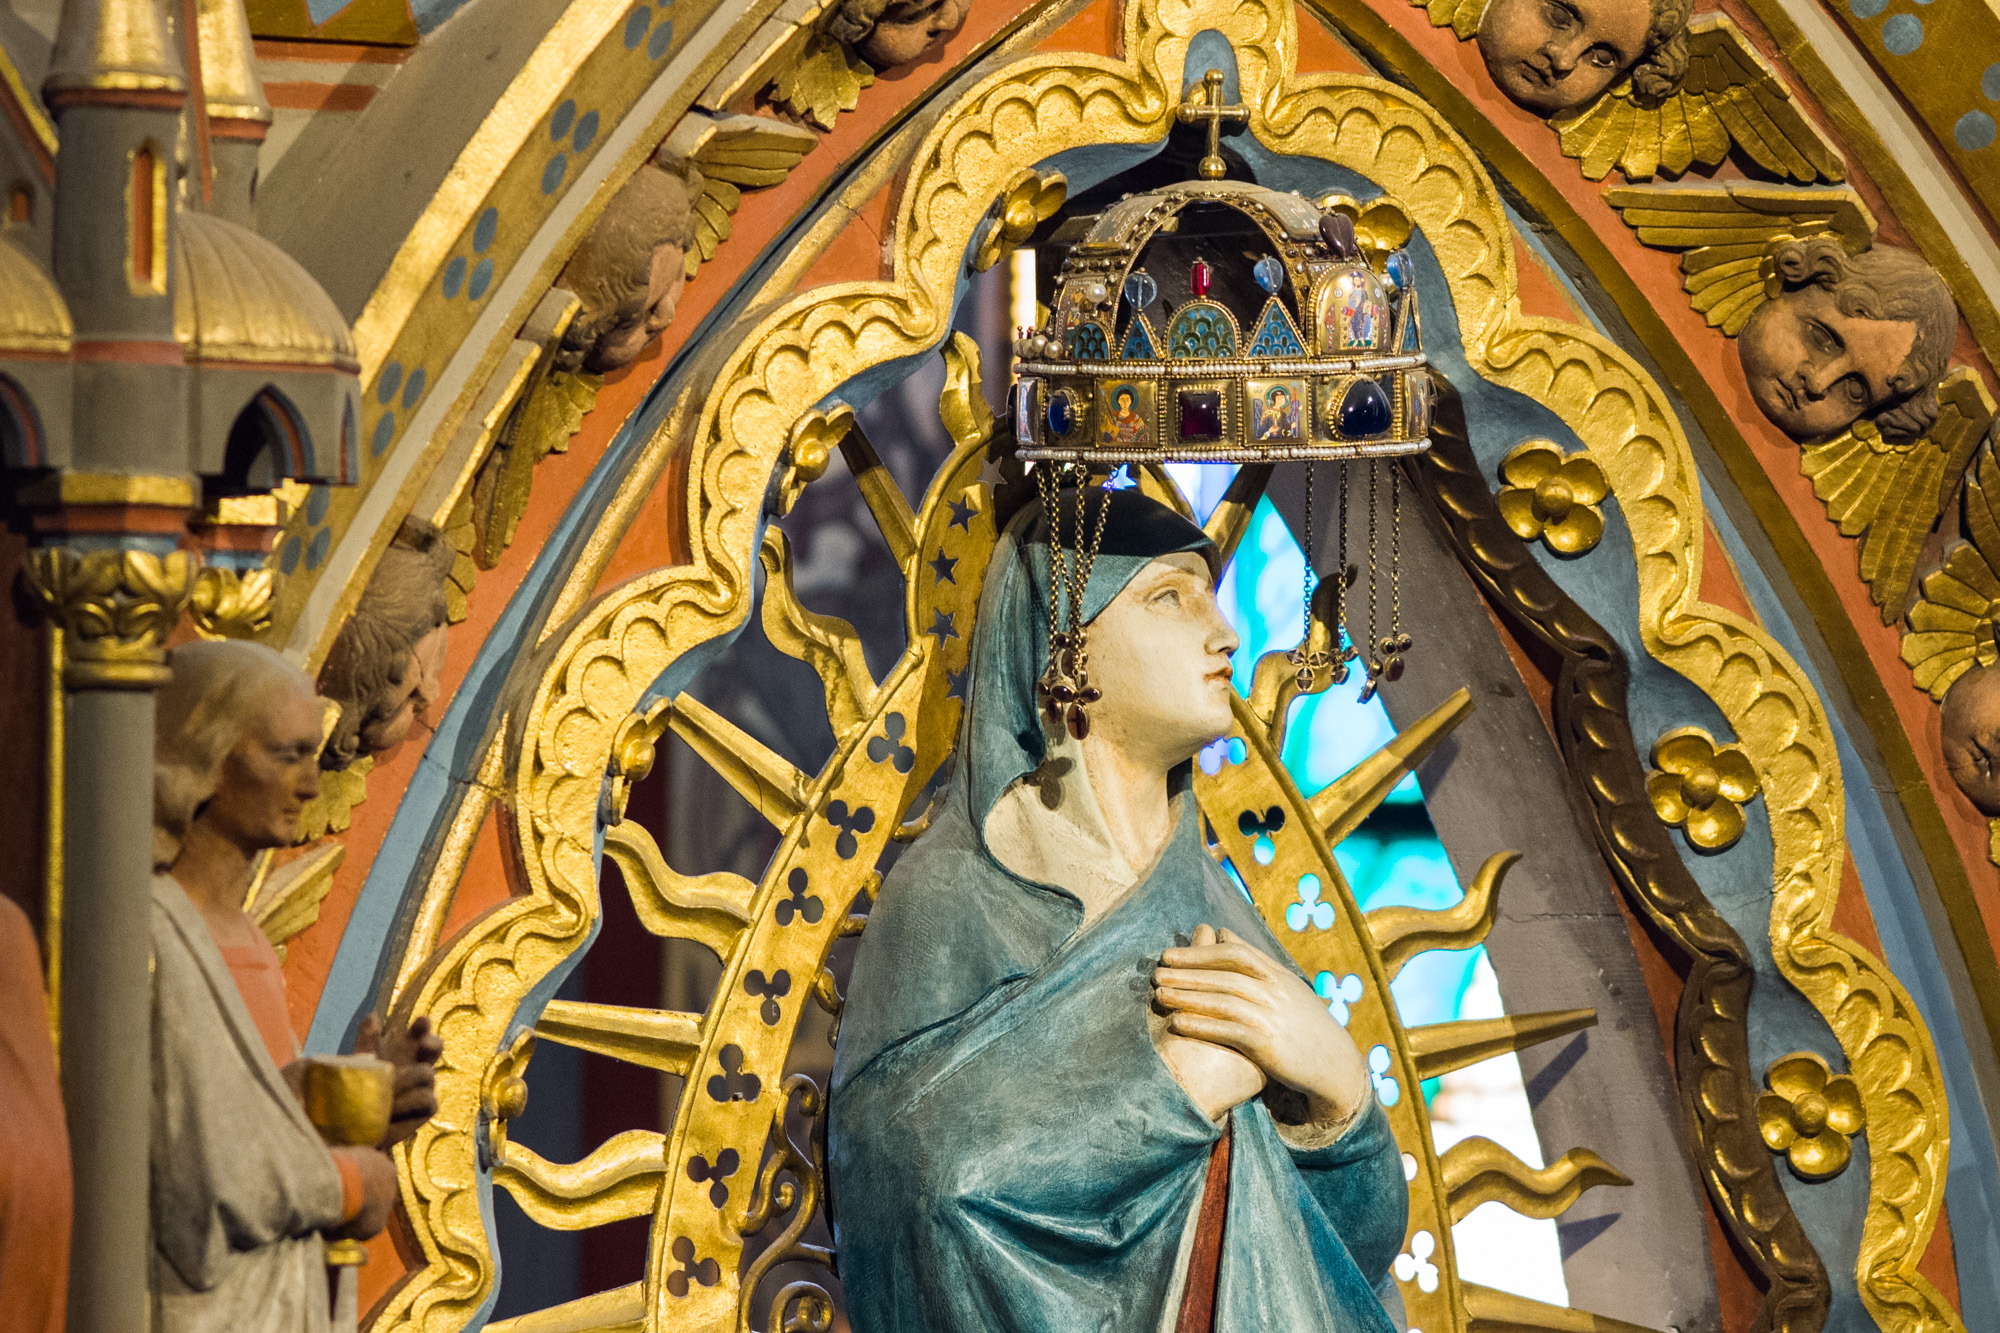 A replica of the Sacred Hungarian Crown above the Virgin Mary resides inside Matthias Church